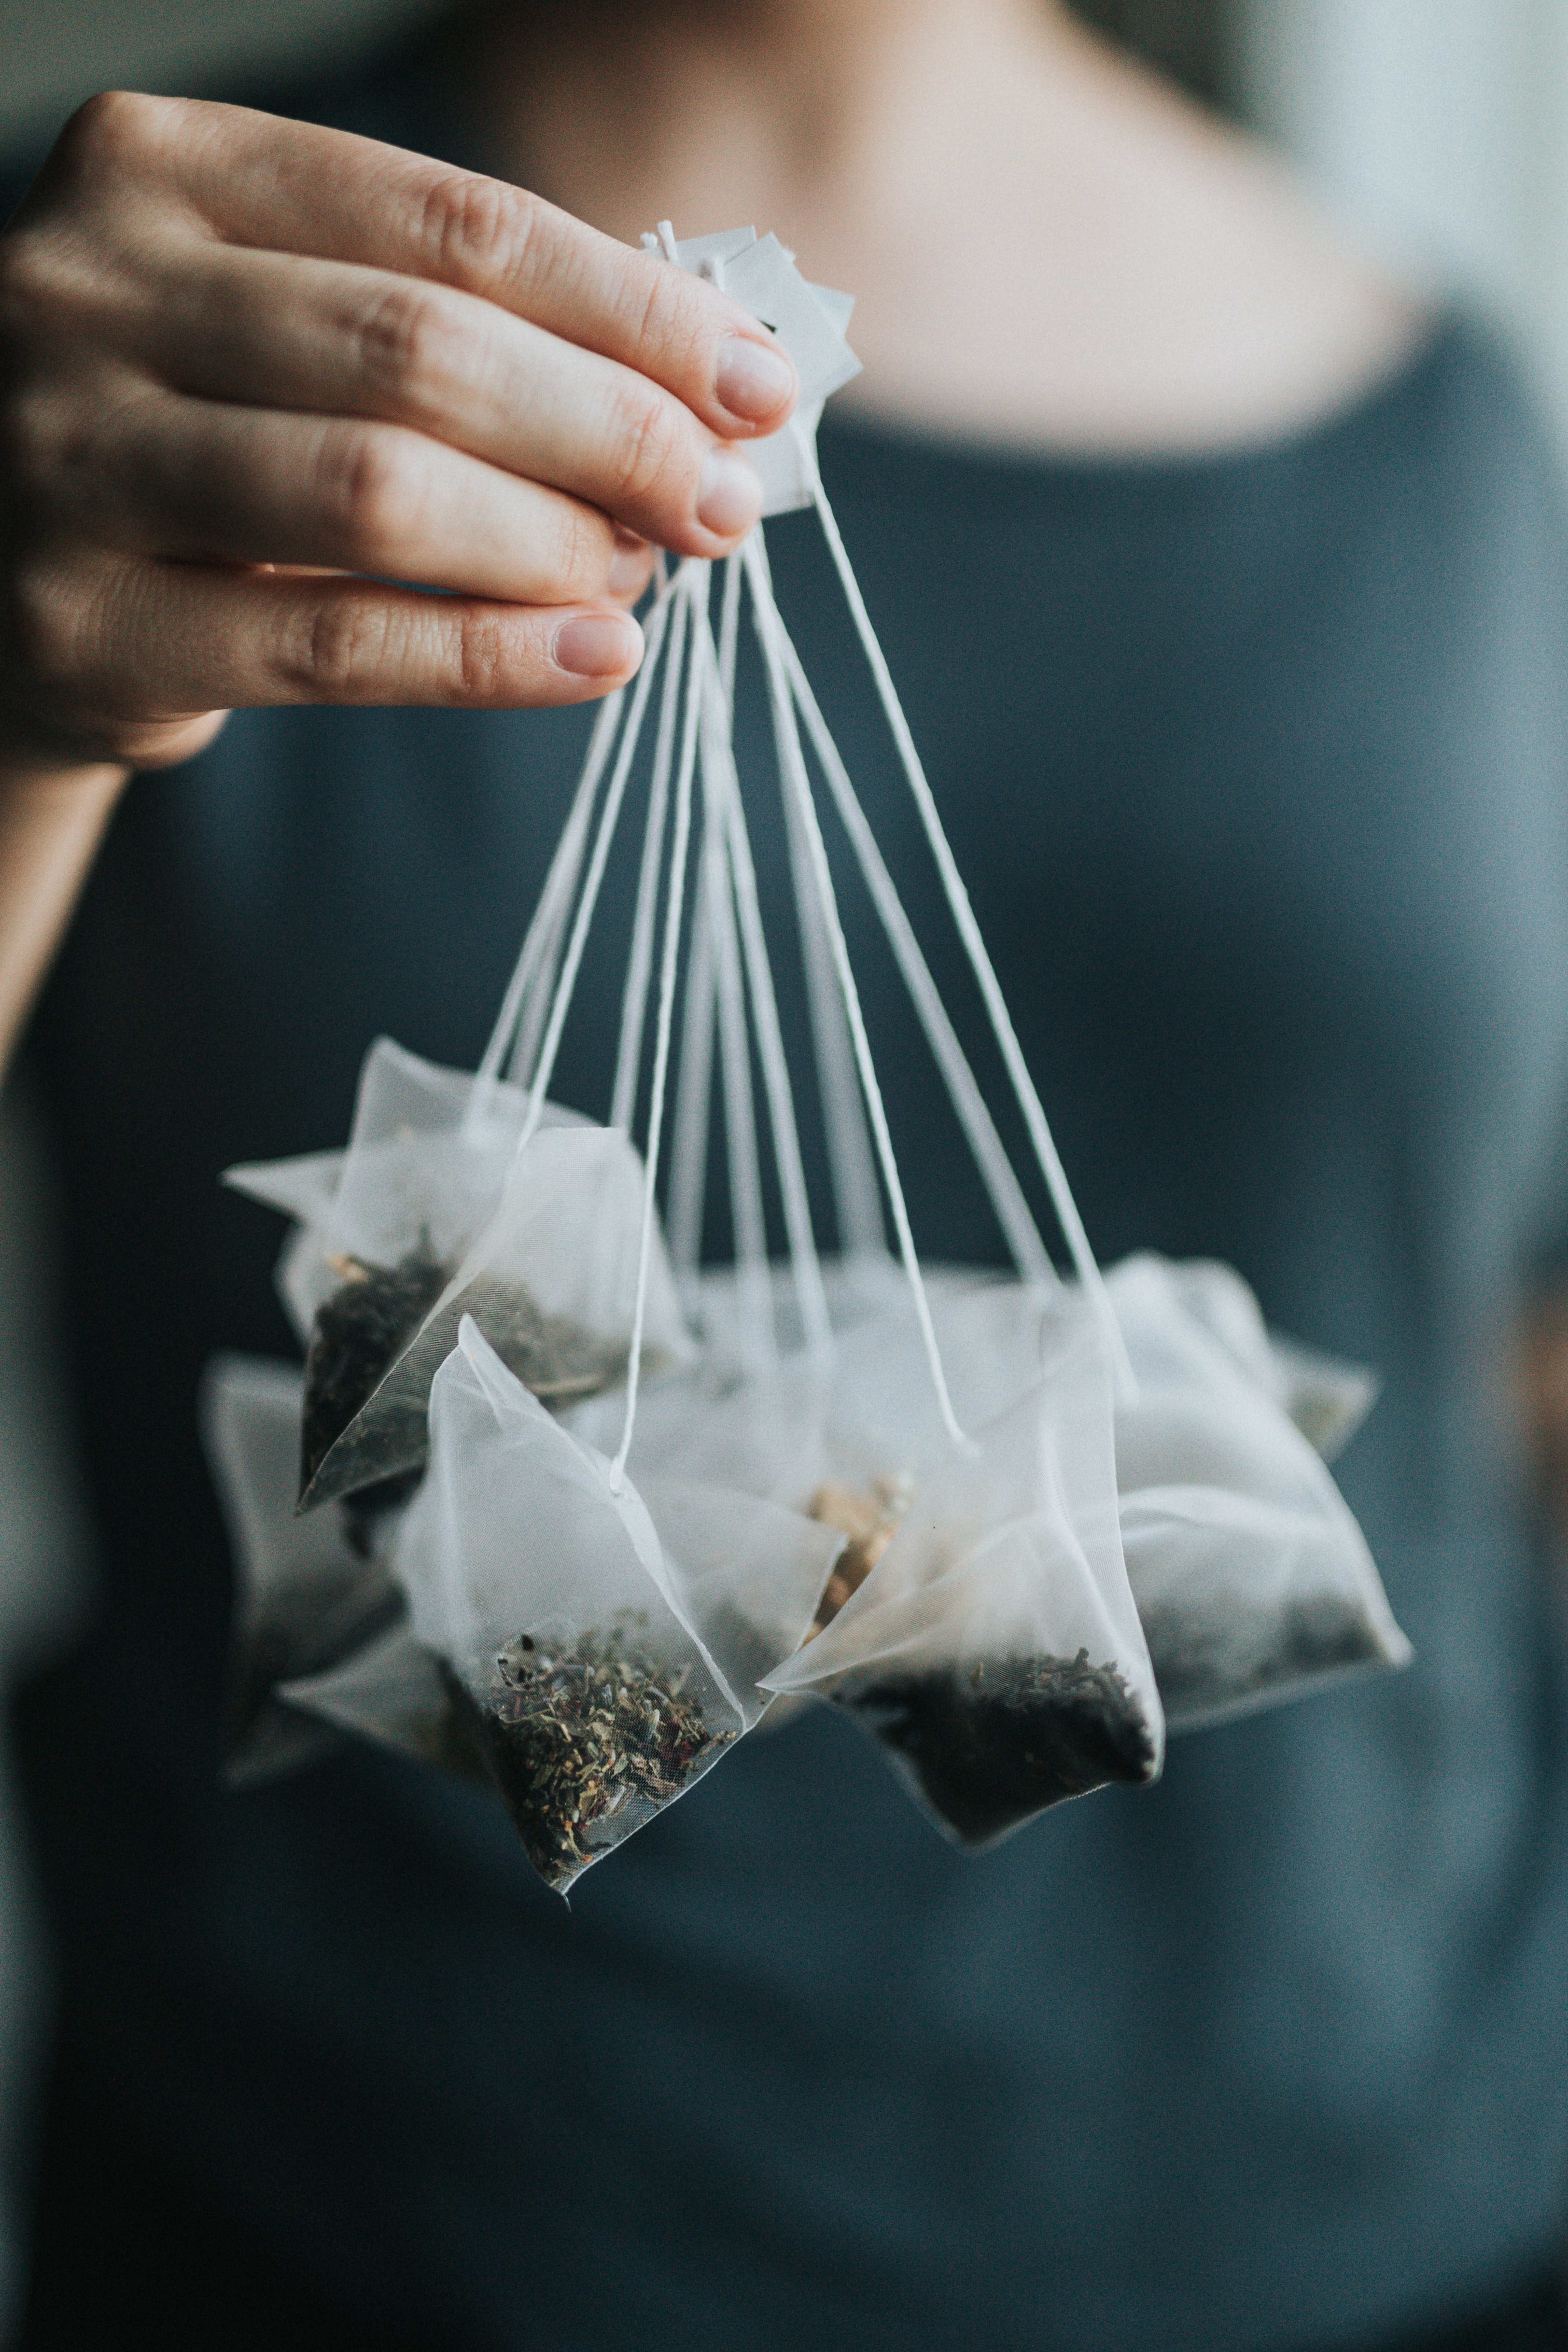 Fancy tea bags are made of plastic